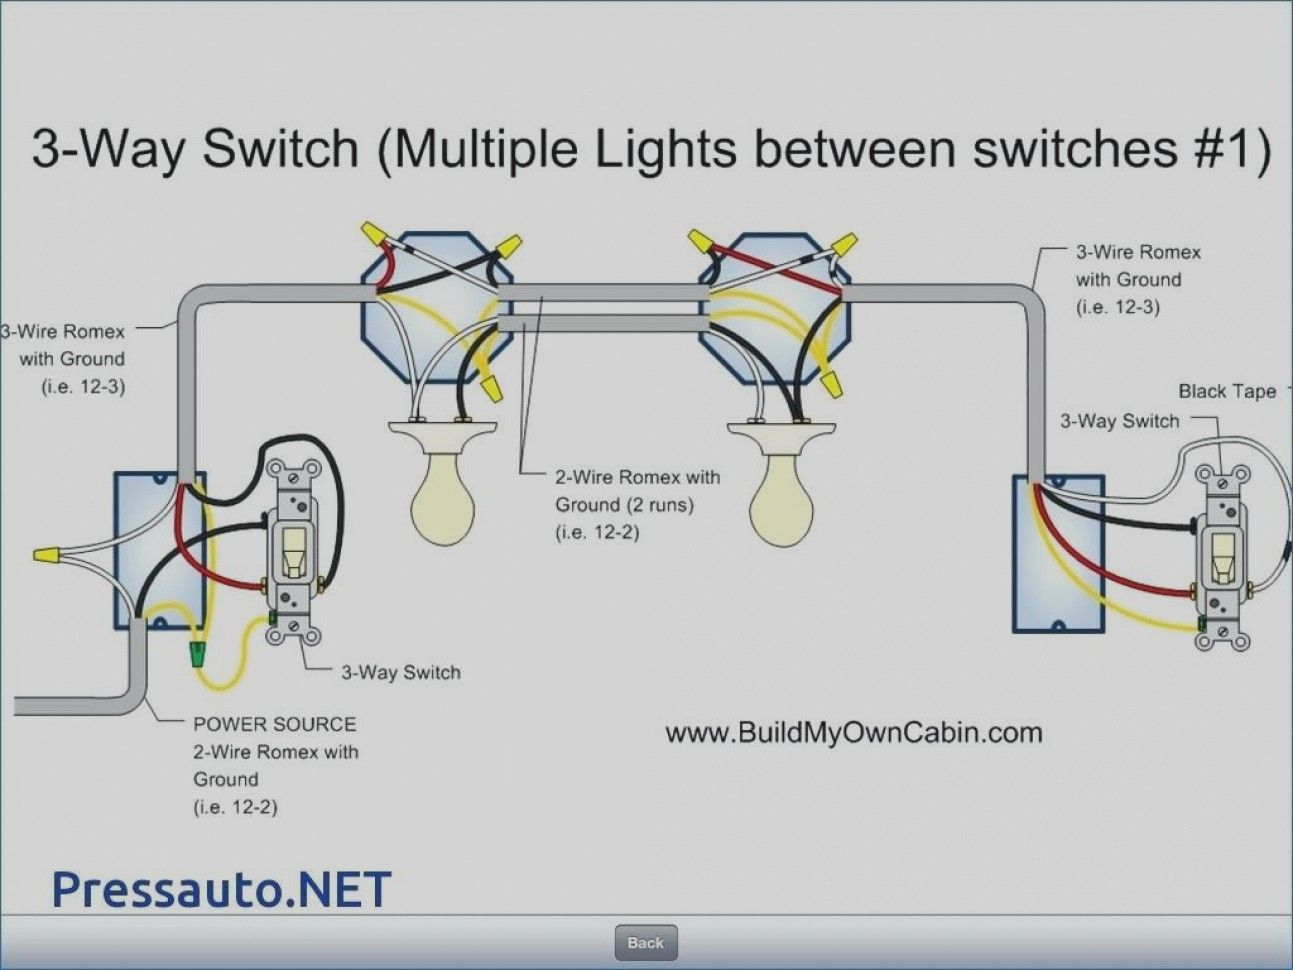 Wiring Diagram For Three Way Switch With Multiple Lights Light Switch Wiring 3 Way Switch Wiring Three Way Switch